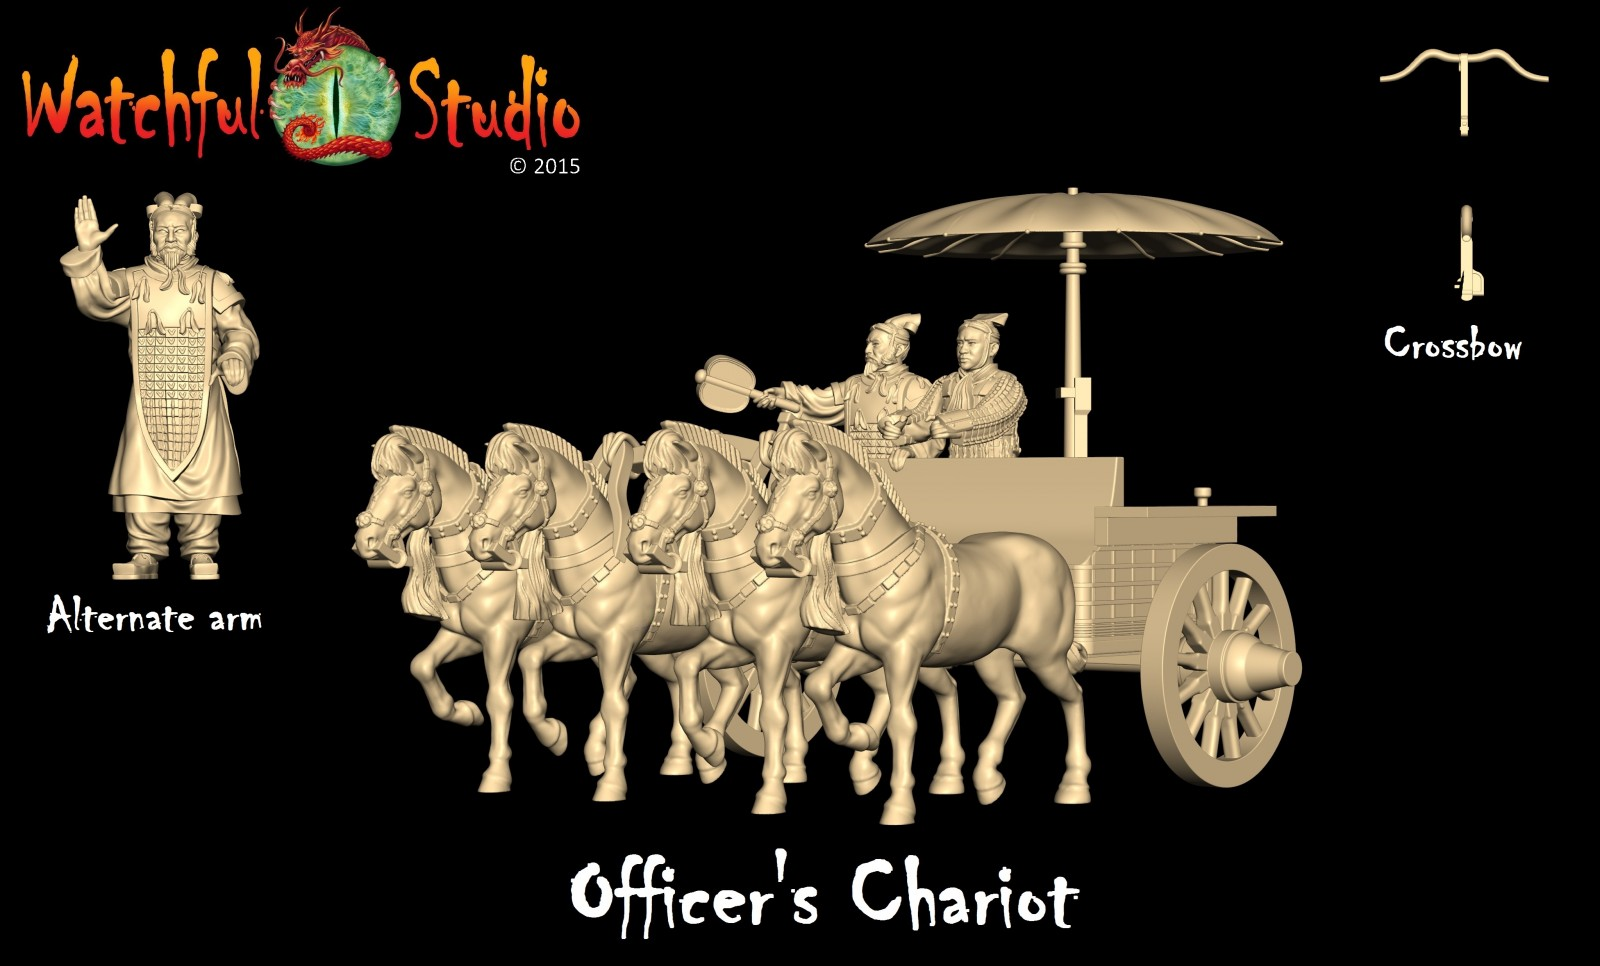 officers-chariot-final-label-w-alternate-bits